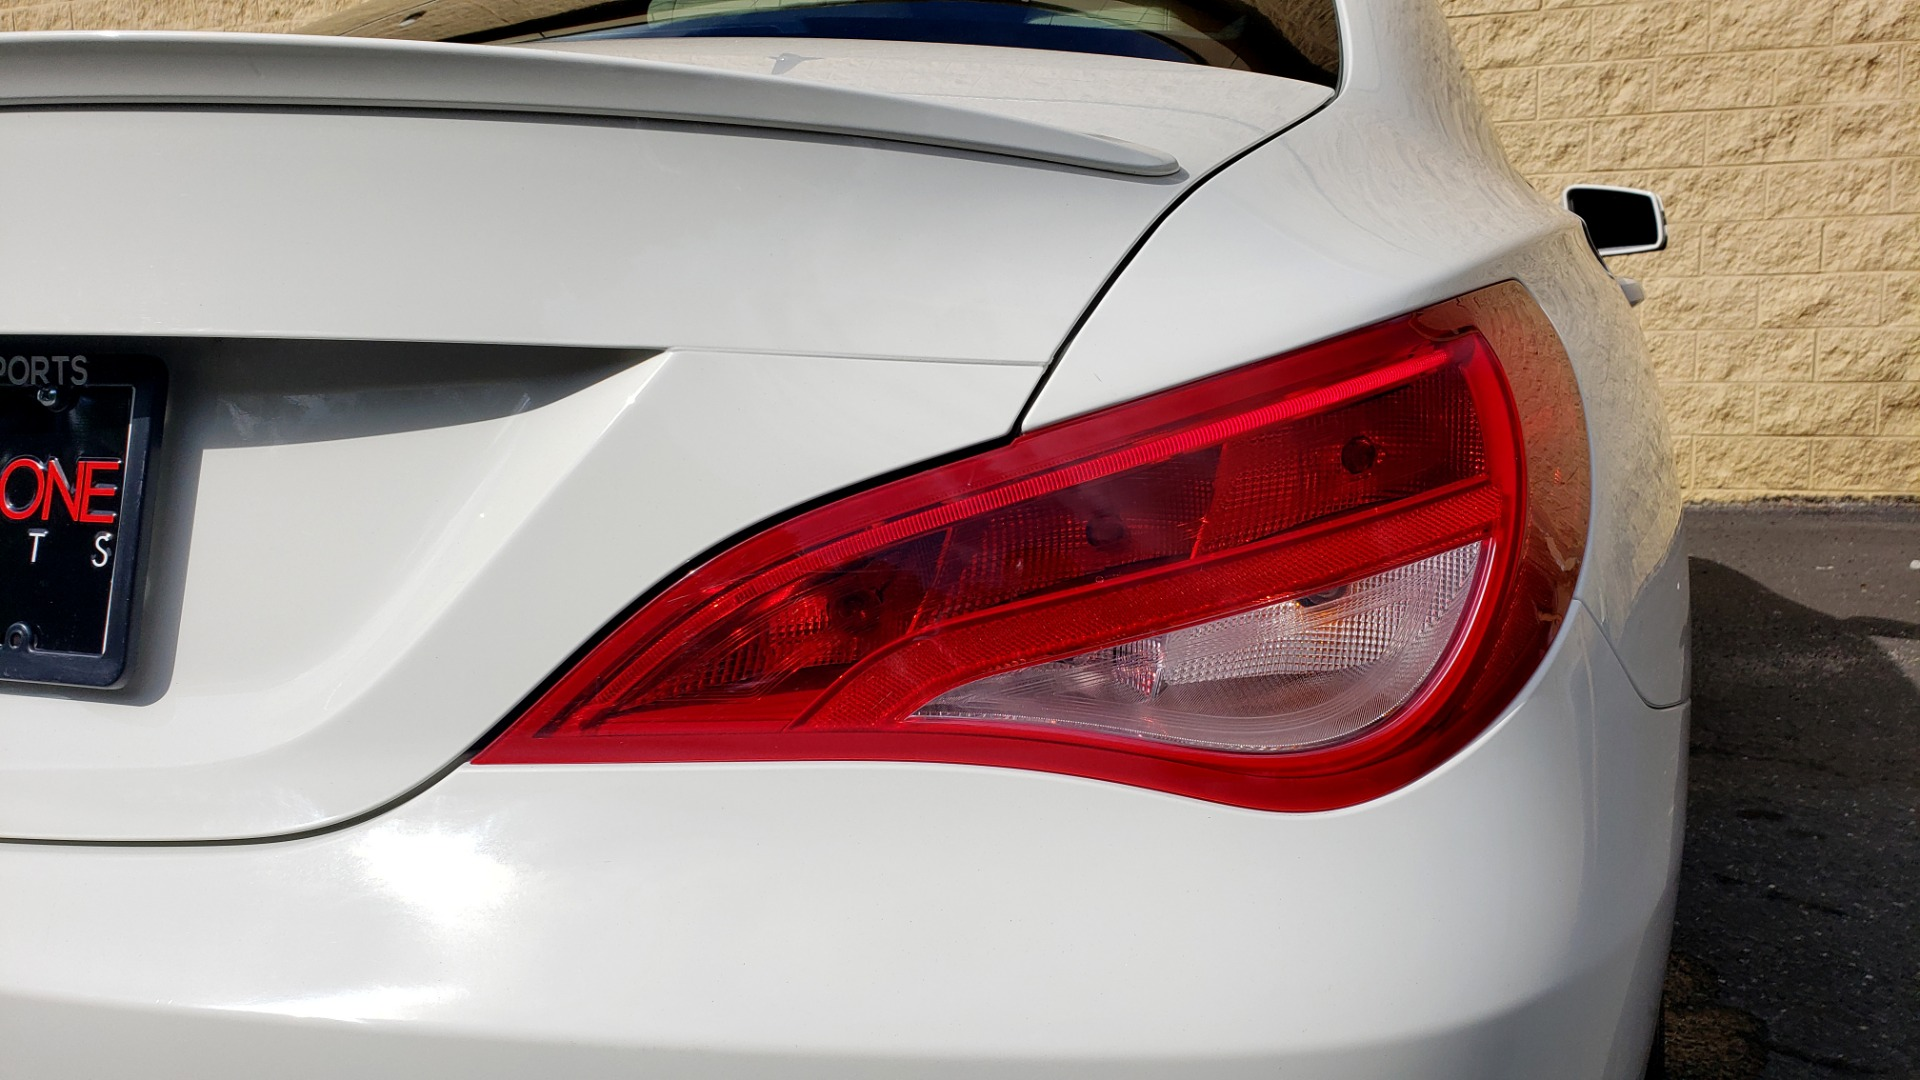 Used 2015 Mercedes-Benz CLA-Class CLA250 / FWD / SUNROOF / SPORT SUSP / CAMERA for sale Sold at Formula One Imports in Charlotte NC 28227 23